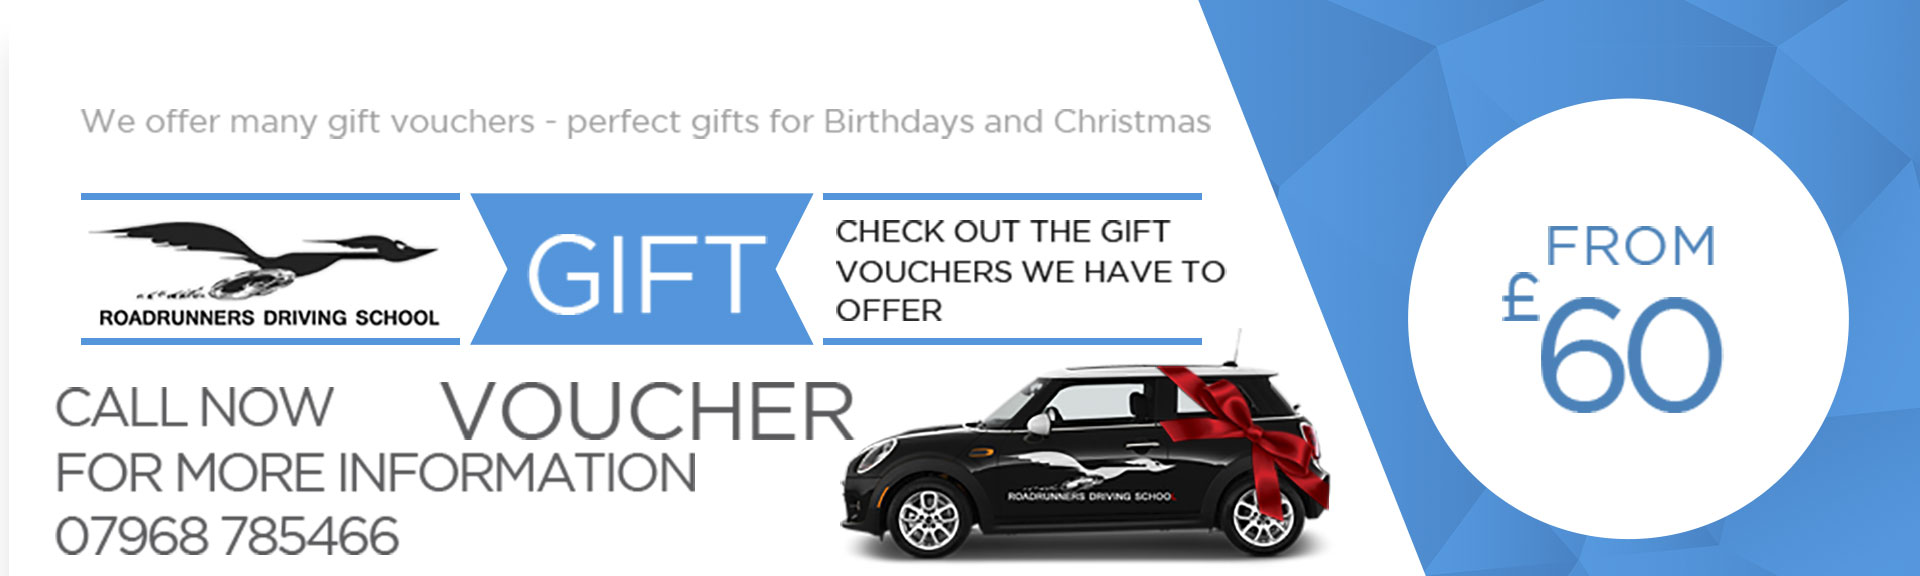 Gift Vouchers for Driving Lessons from £60